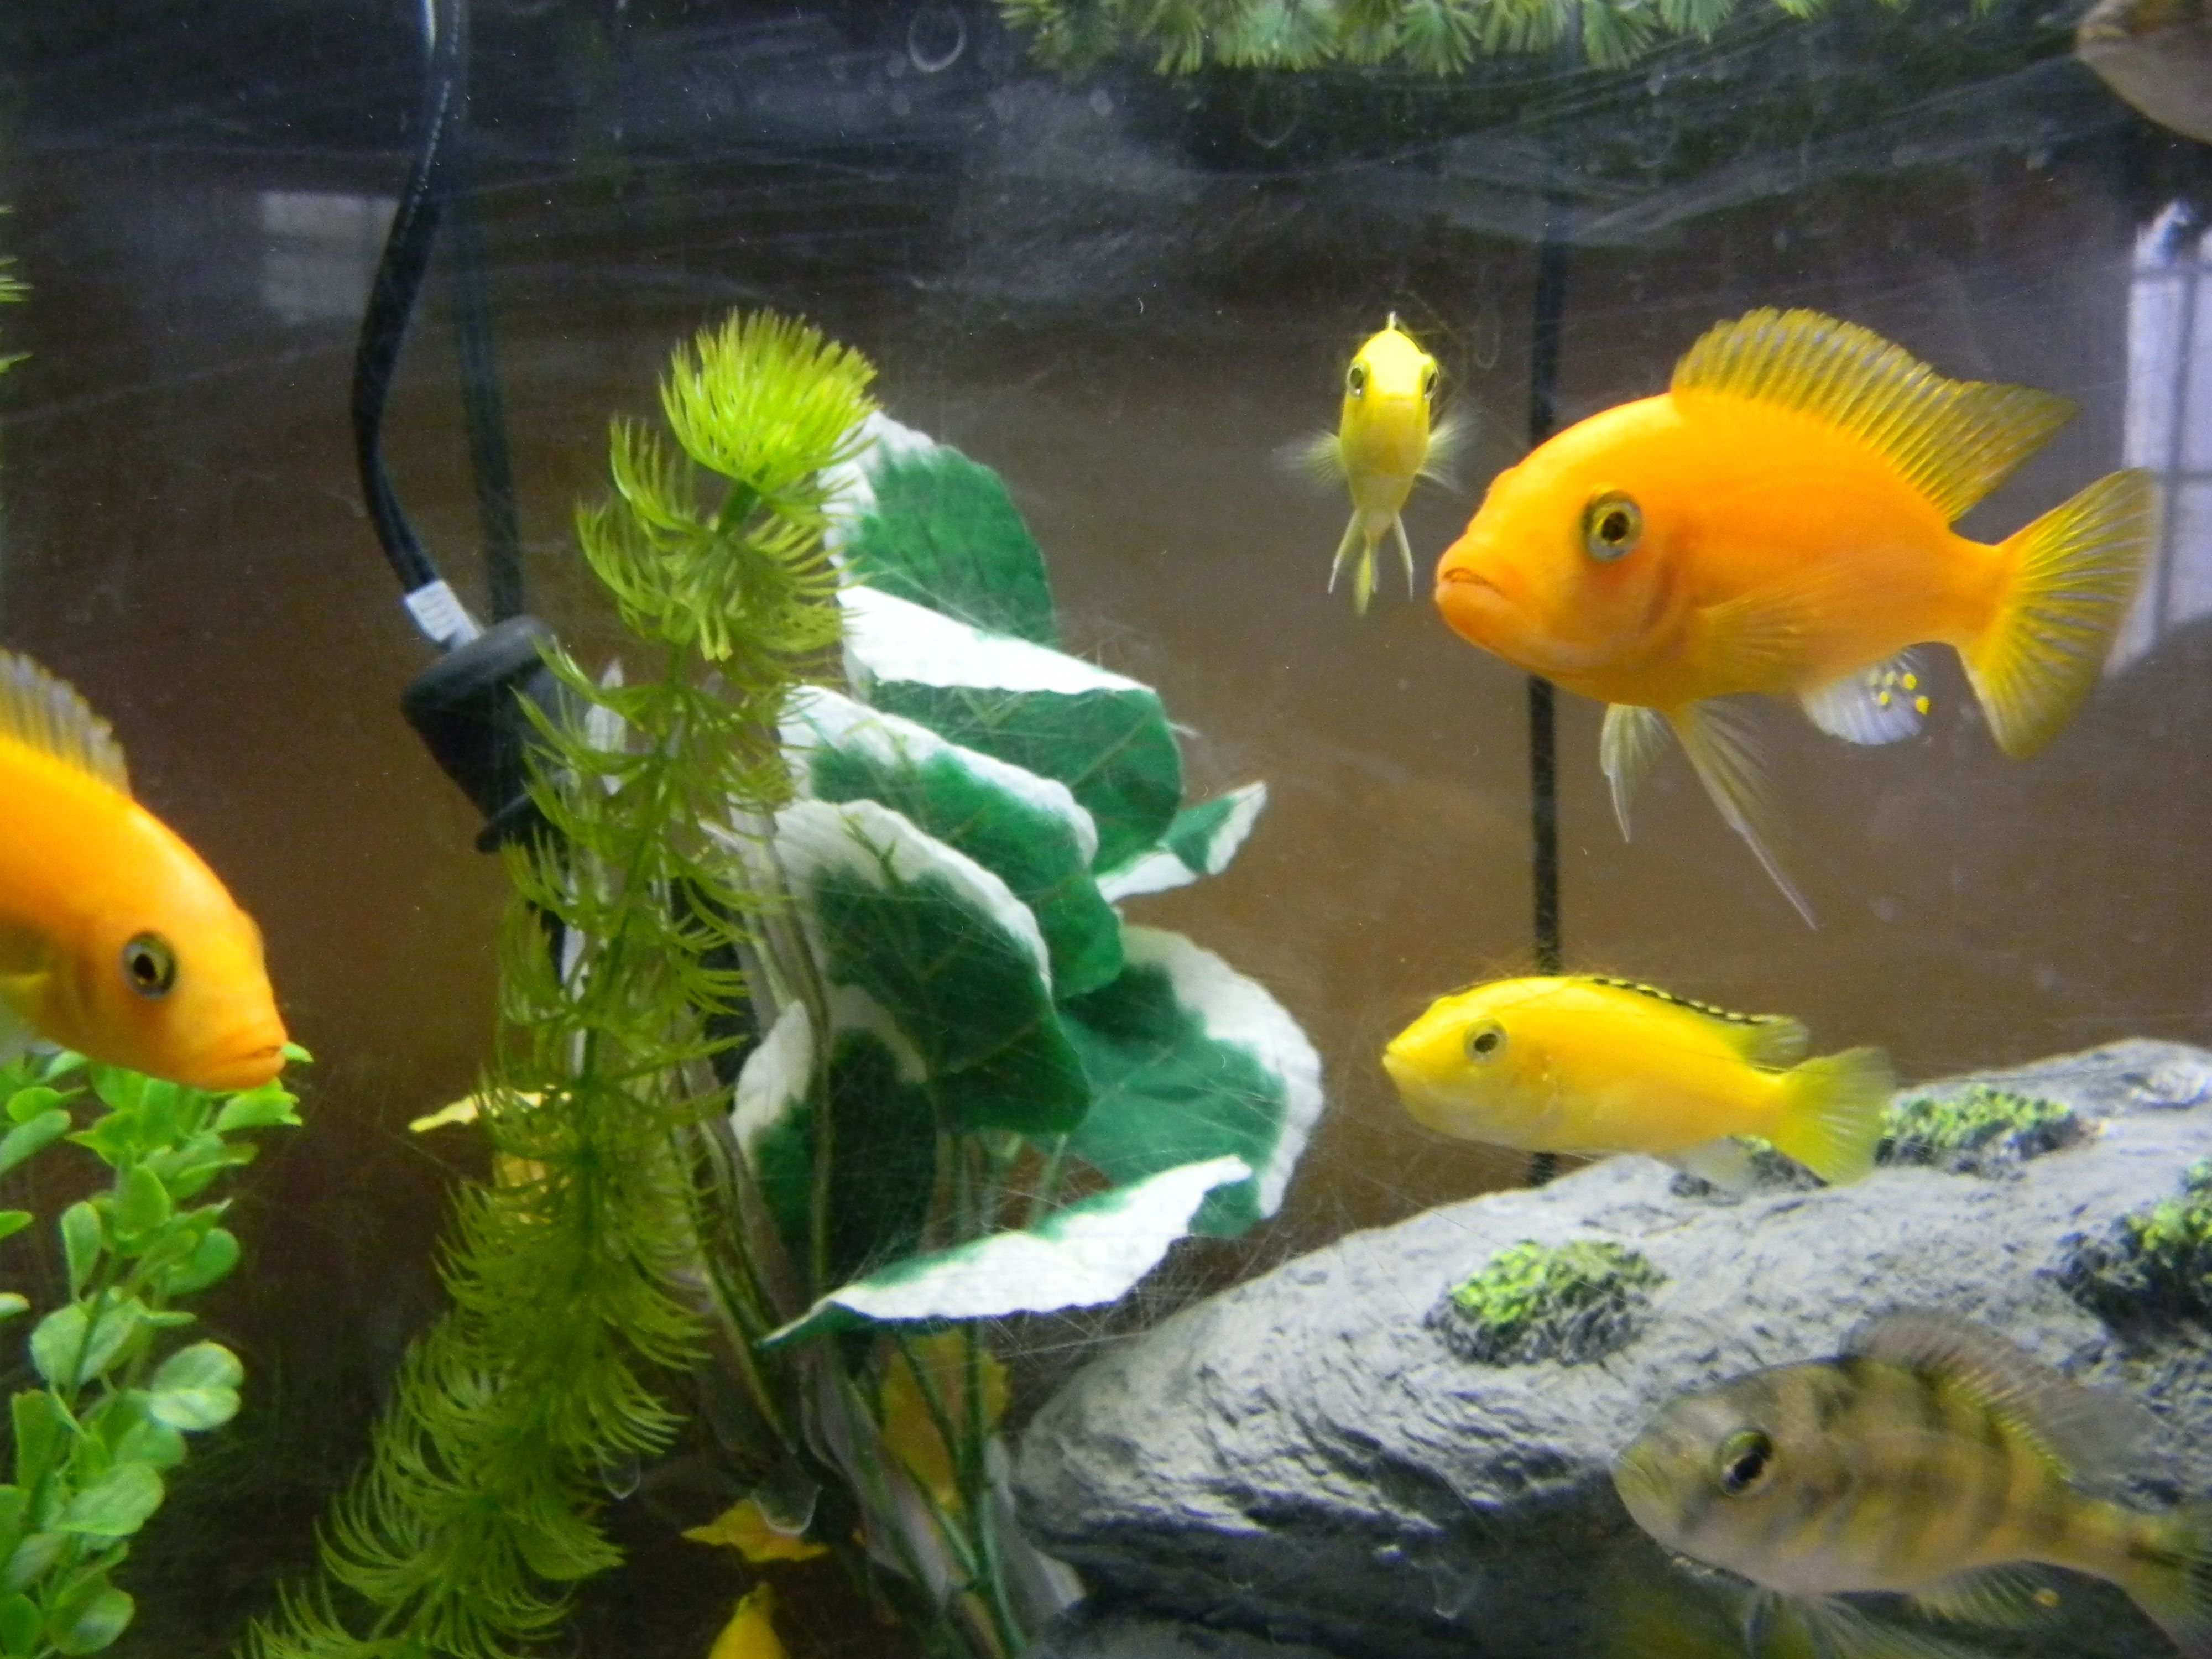 Black and yellow freshwater aquarium fish - Yellow And Orange Cichlids Seem To Be Less Aggressive That Would Explain Why I Have All Blue And Blue And Black Left